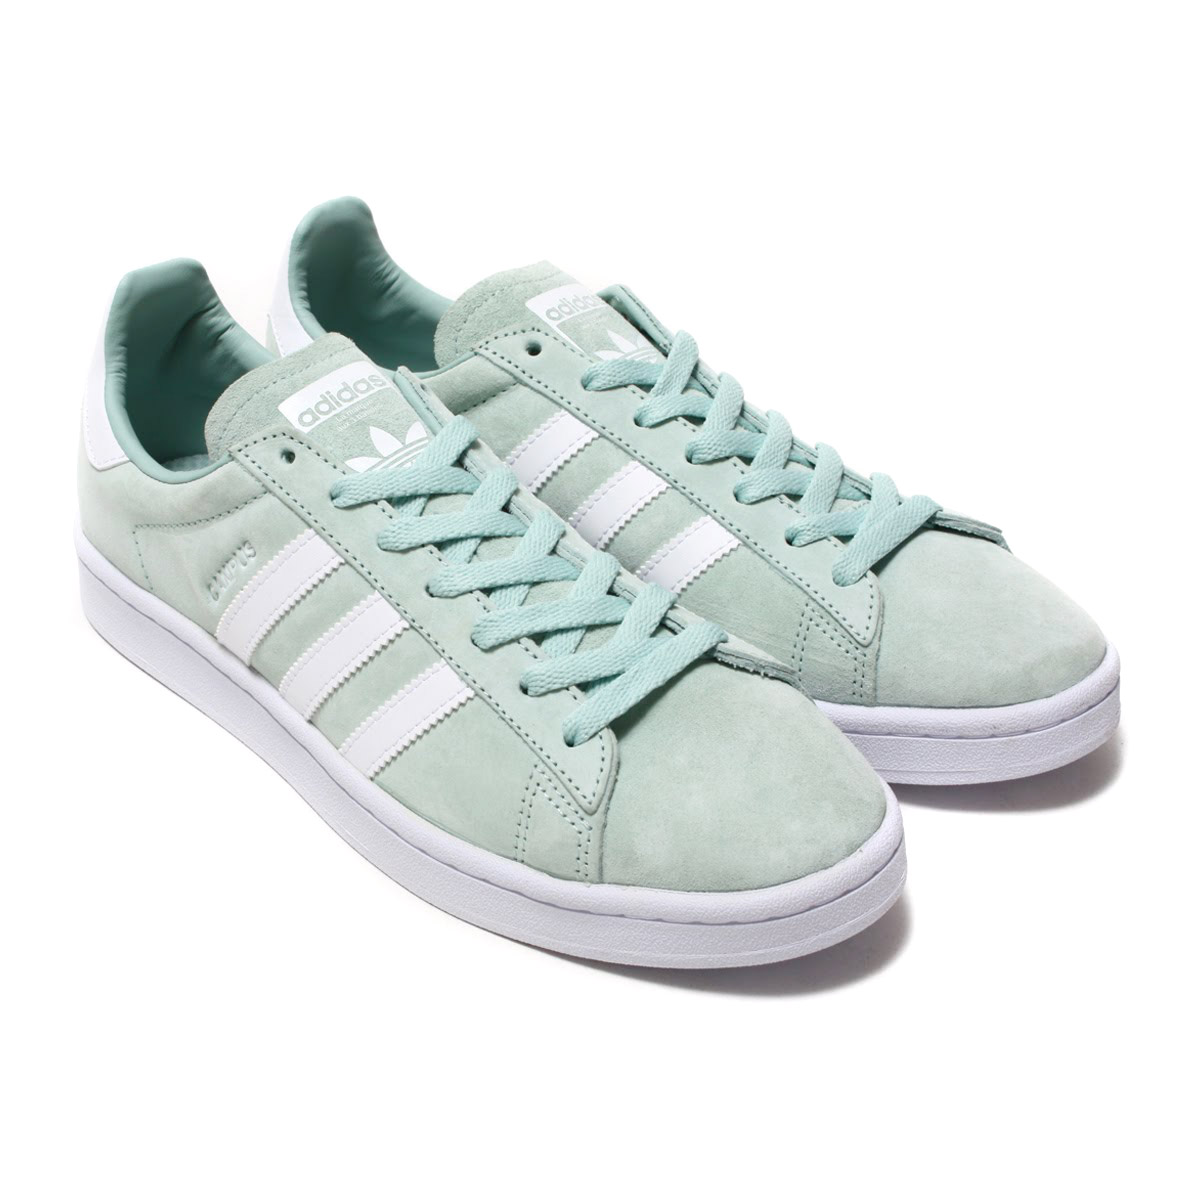 reputable site 8ac9f 71f7e adidas Originals CAMPUS (Adidas original scan pass) Ash GreenRunning  WhiteRunning White 18SS-I